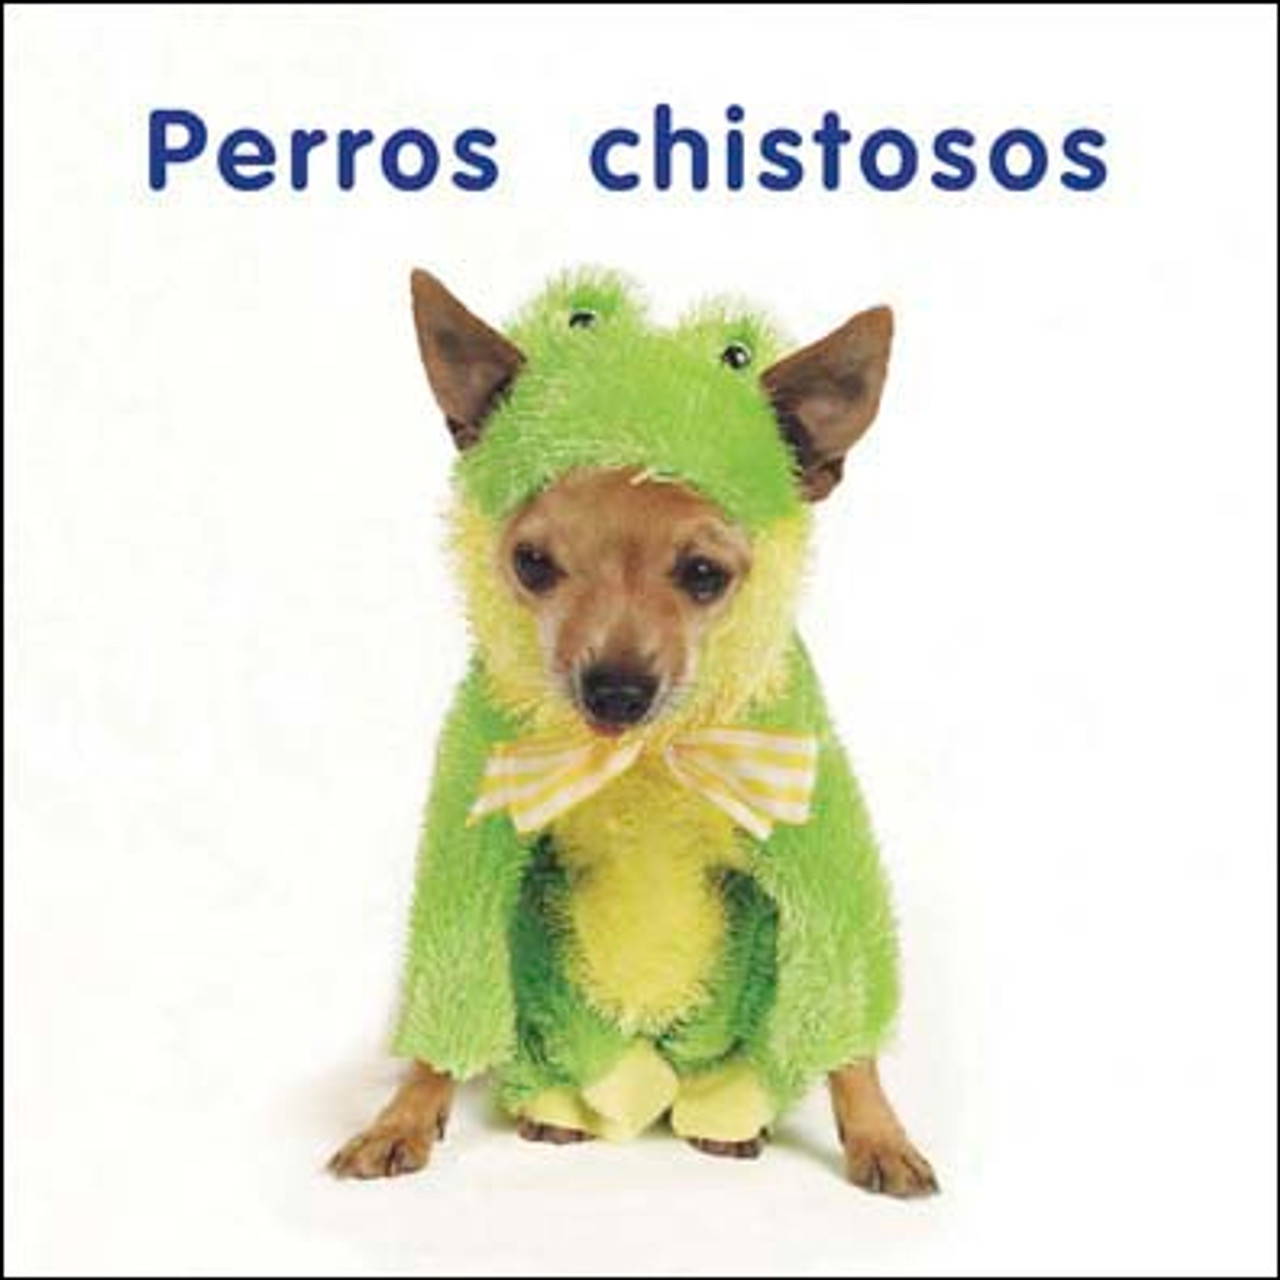 Perros chistosos - Level A/1